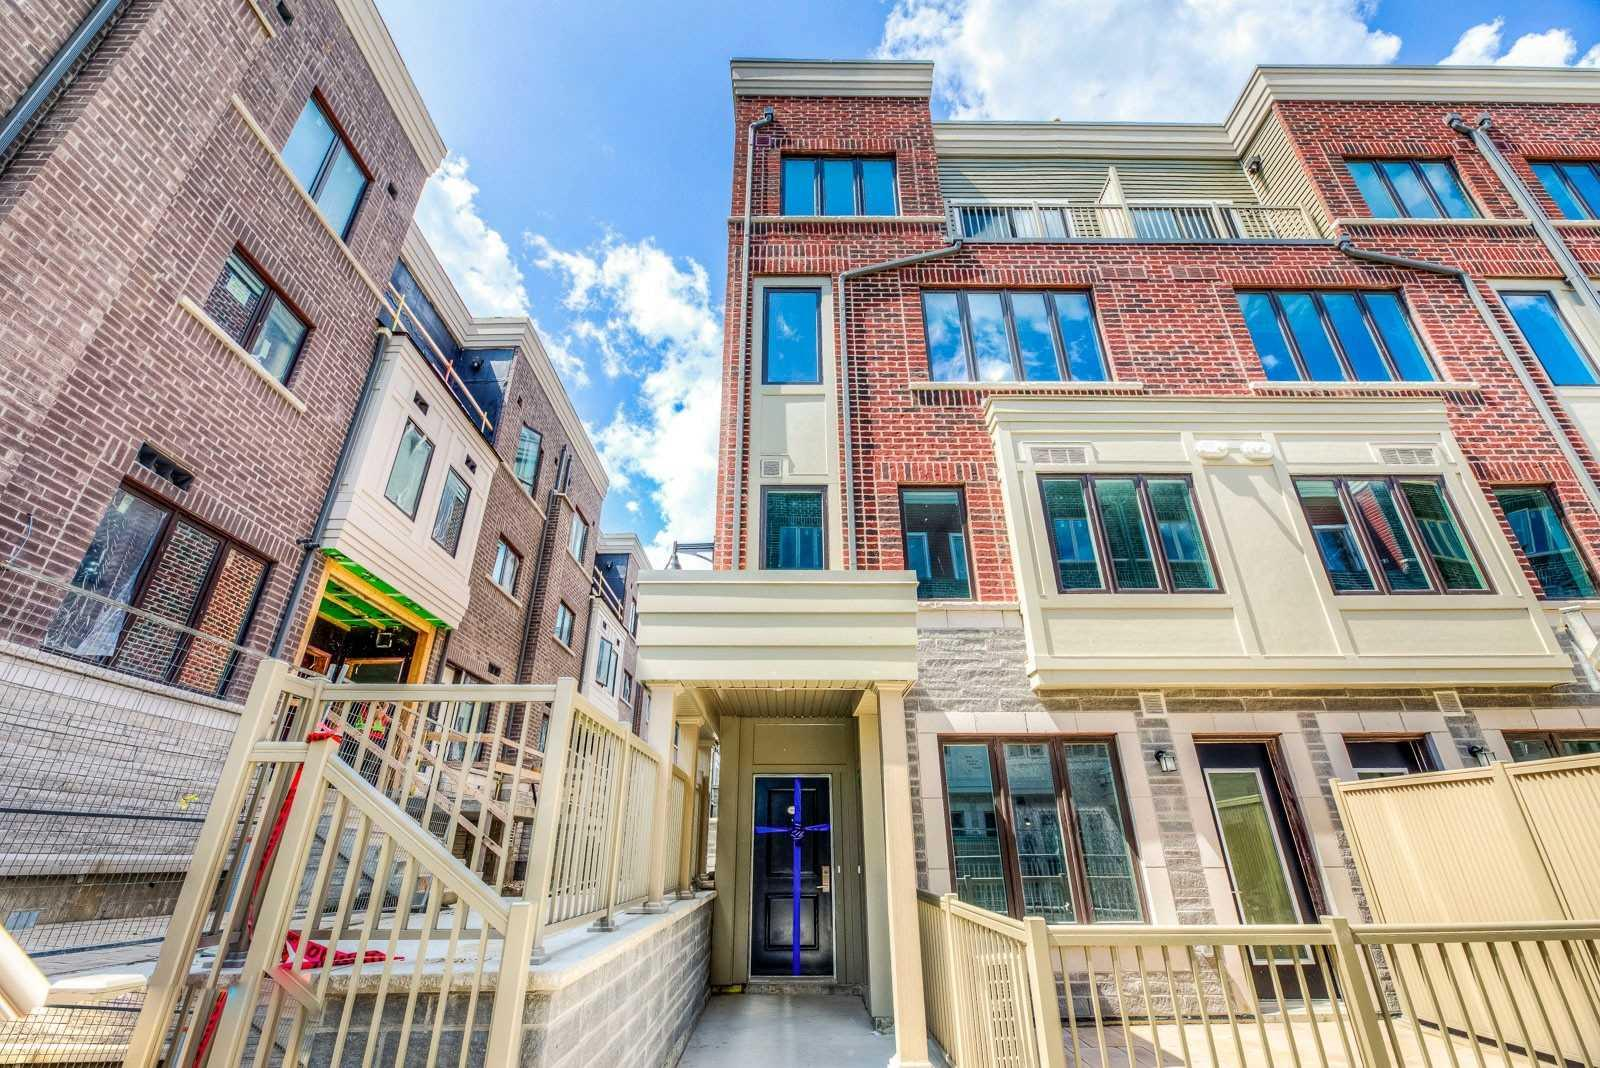 Toronto Real Estate for Sale - Search MLS | Zoocasa